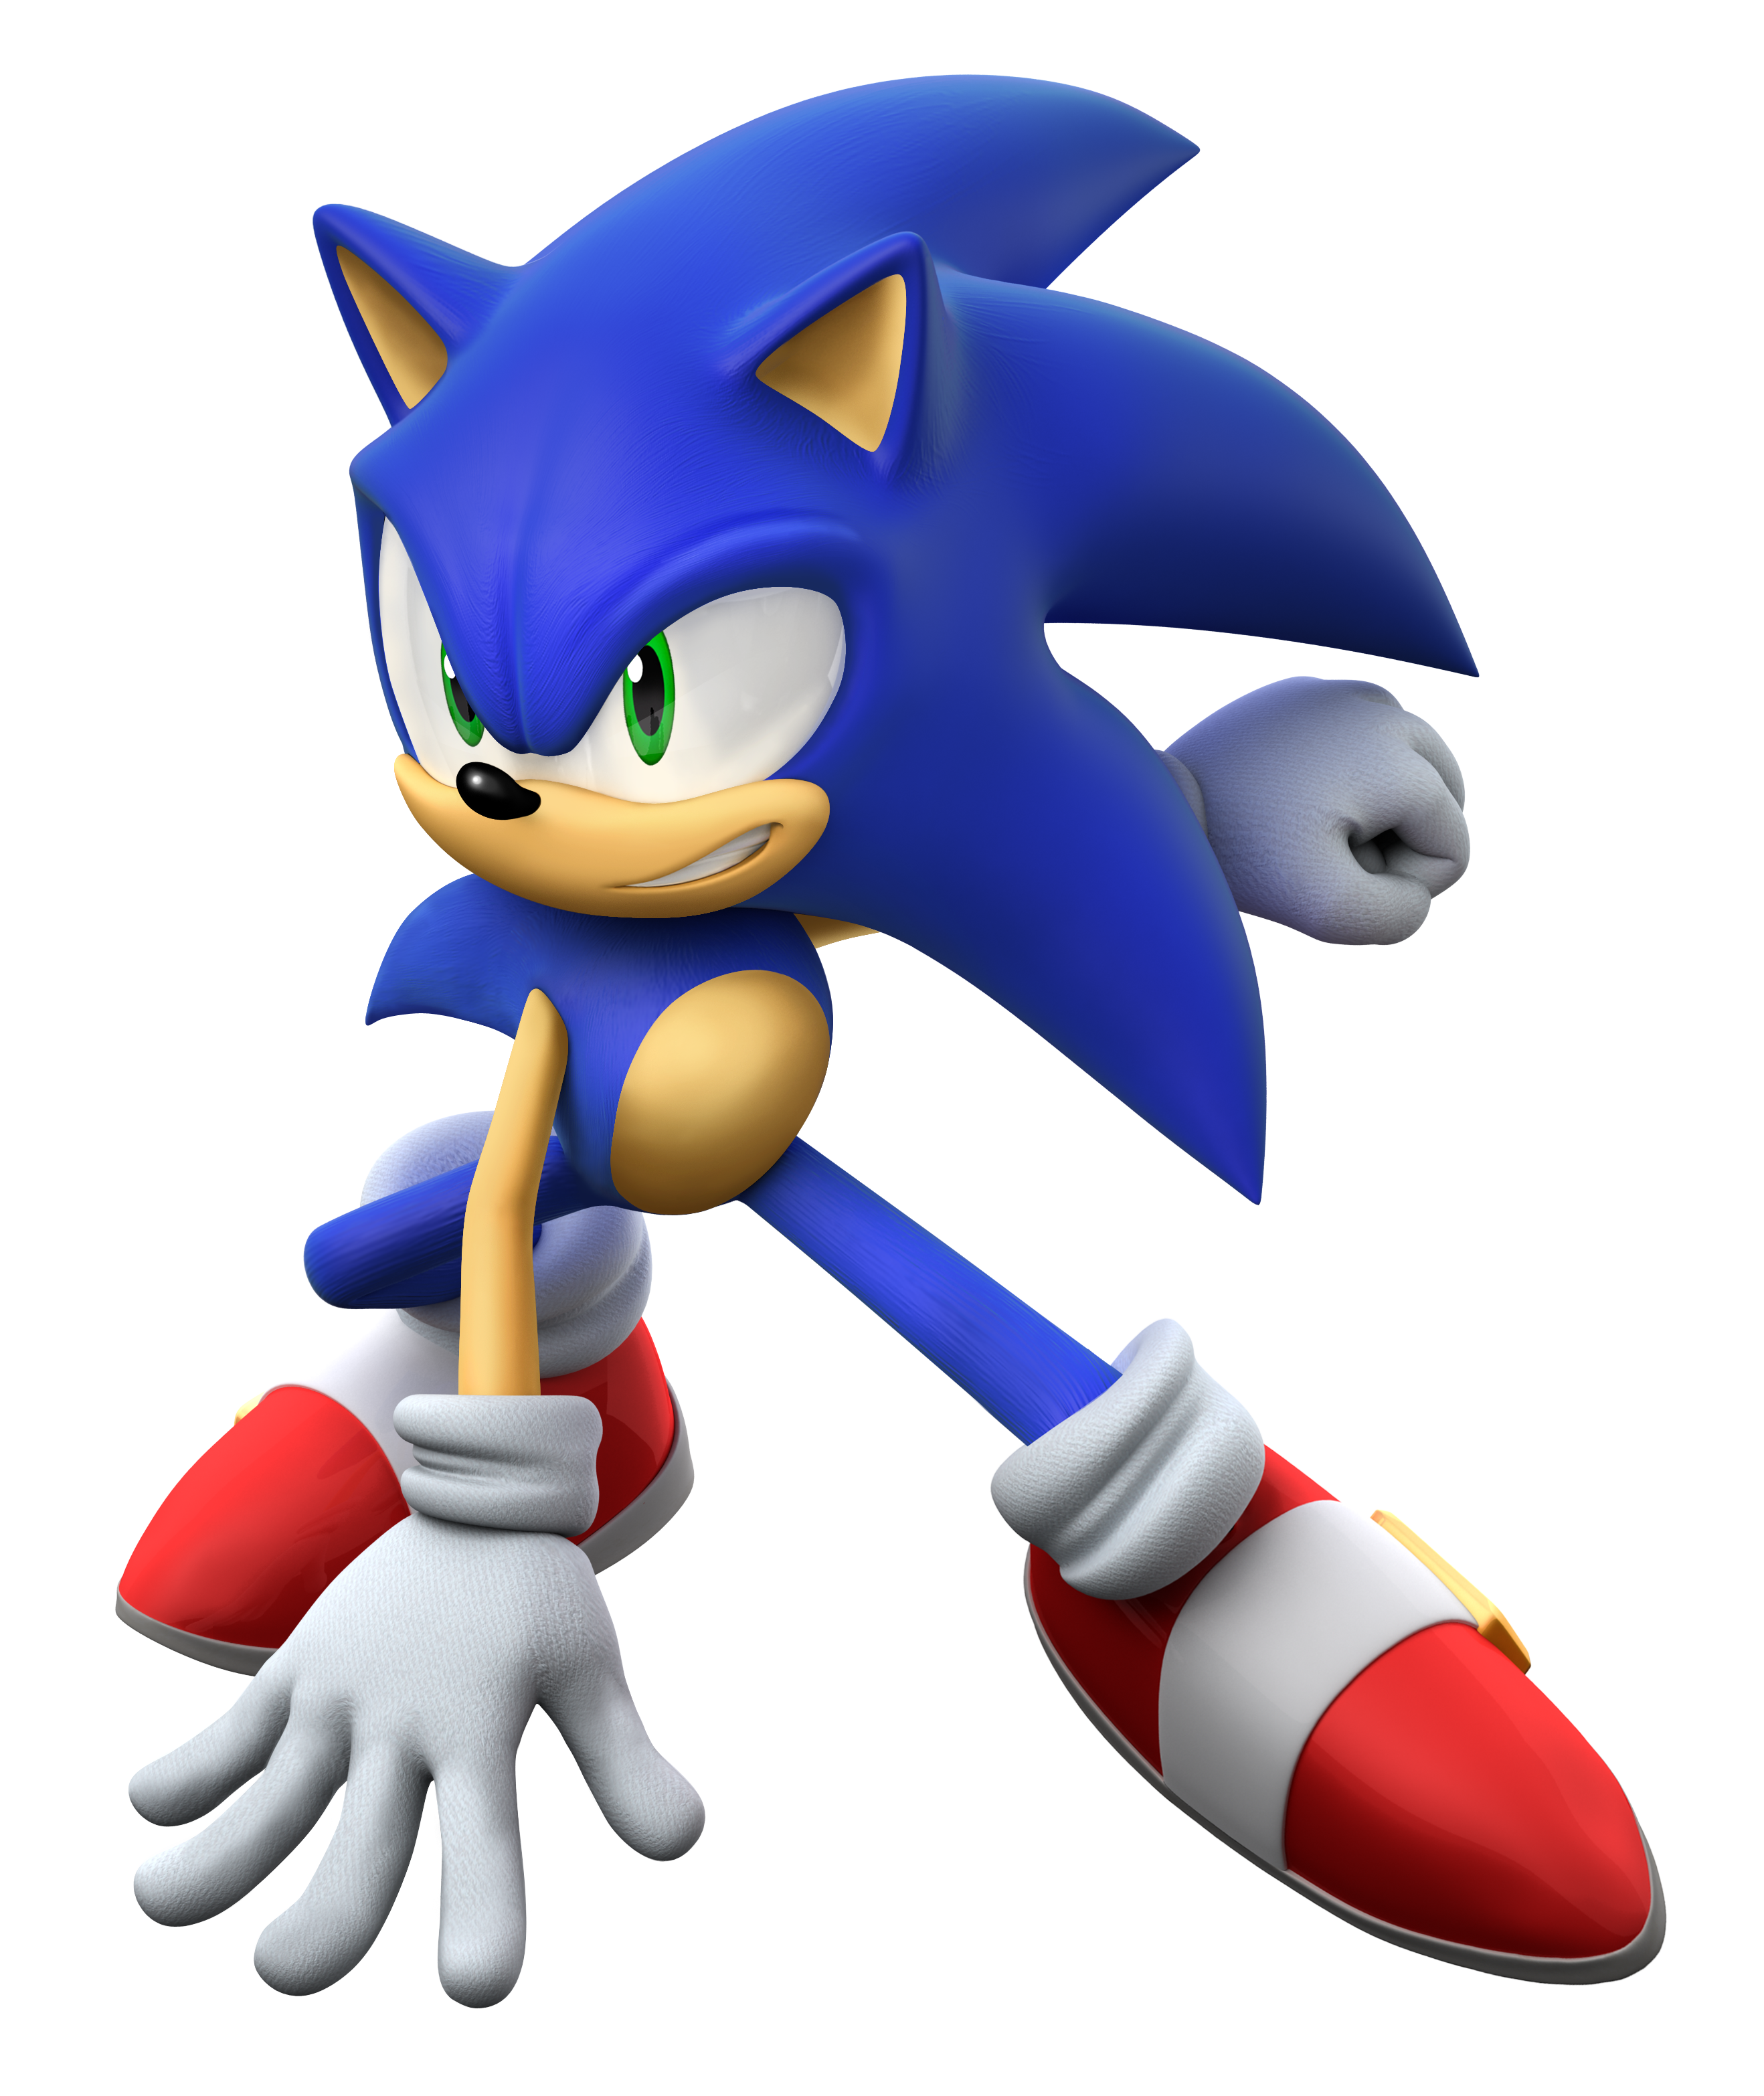 Hd sonic clipart - Sonic HD PNG